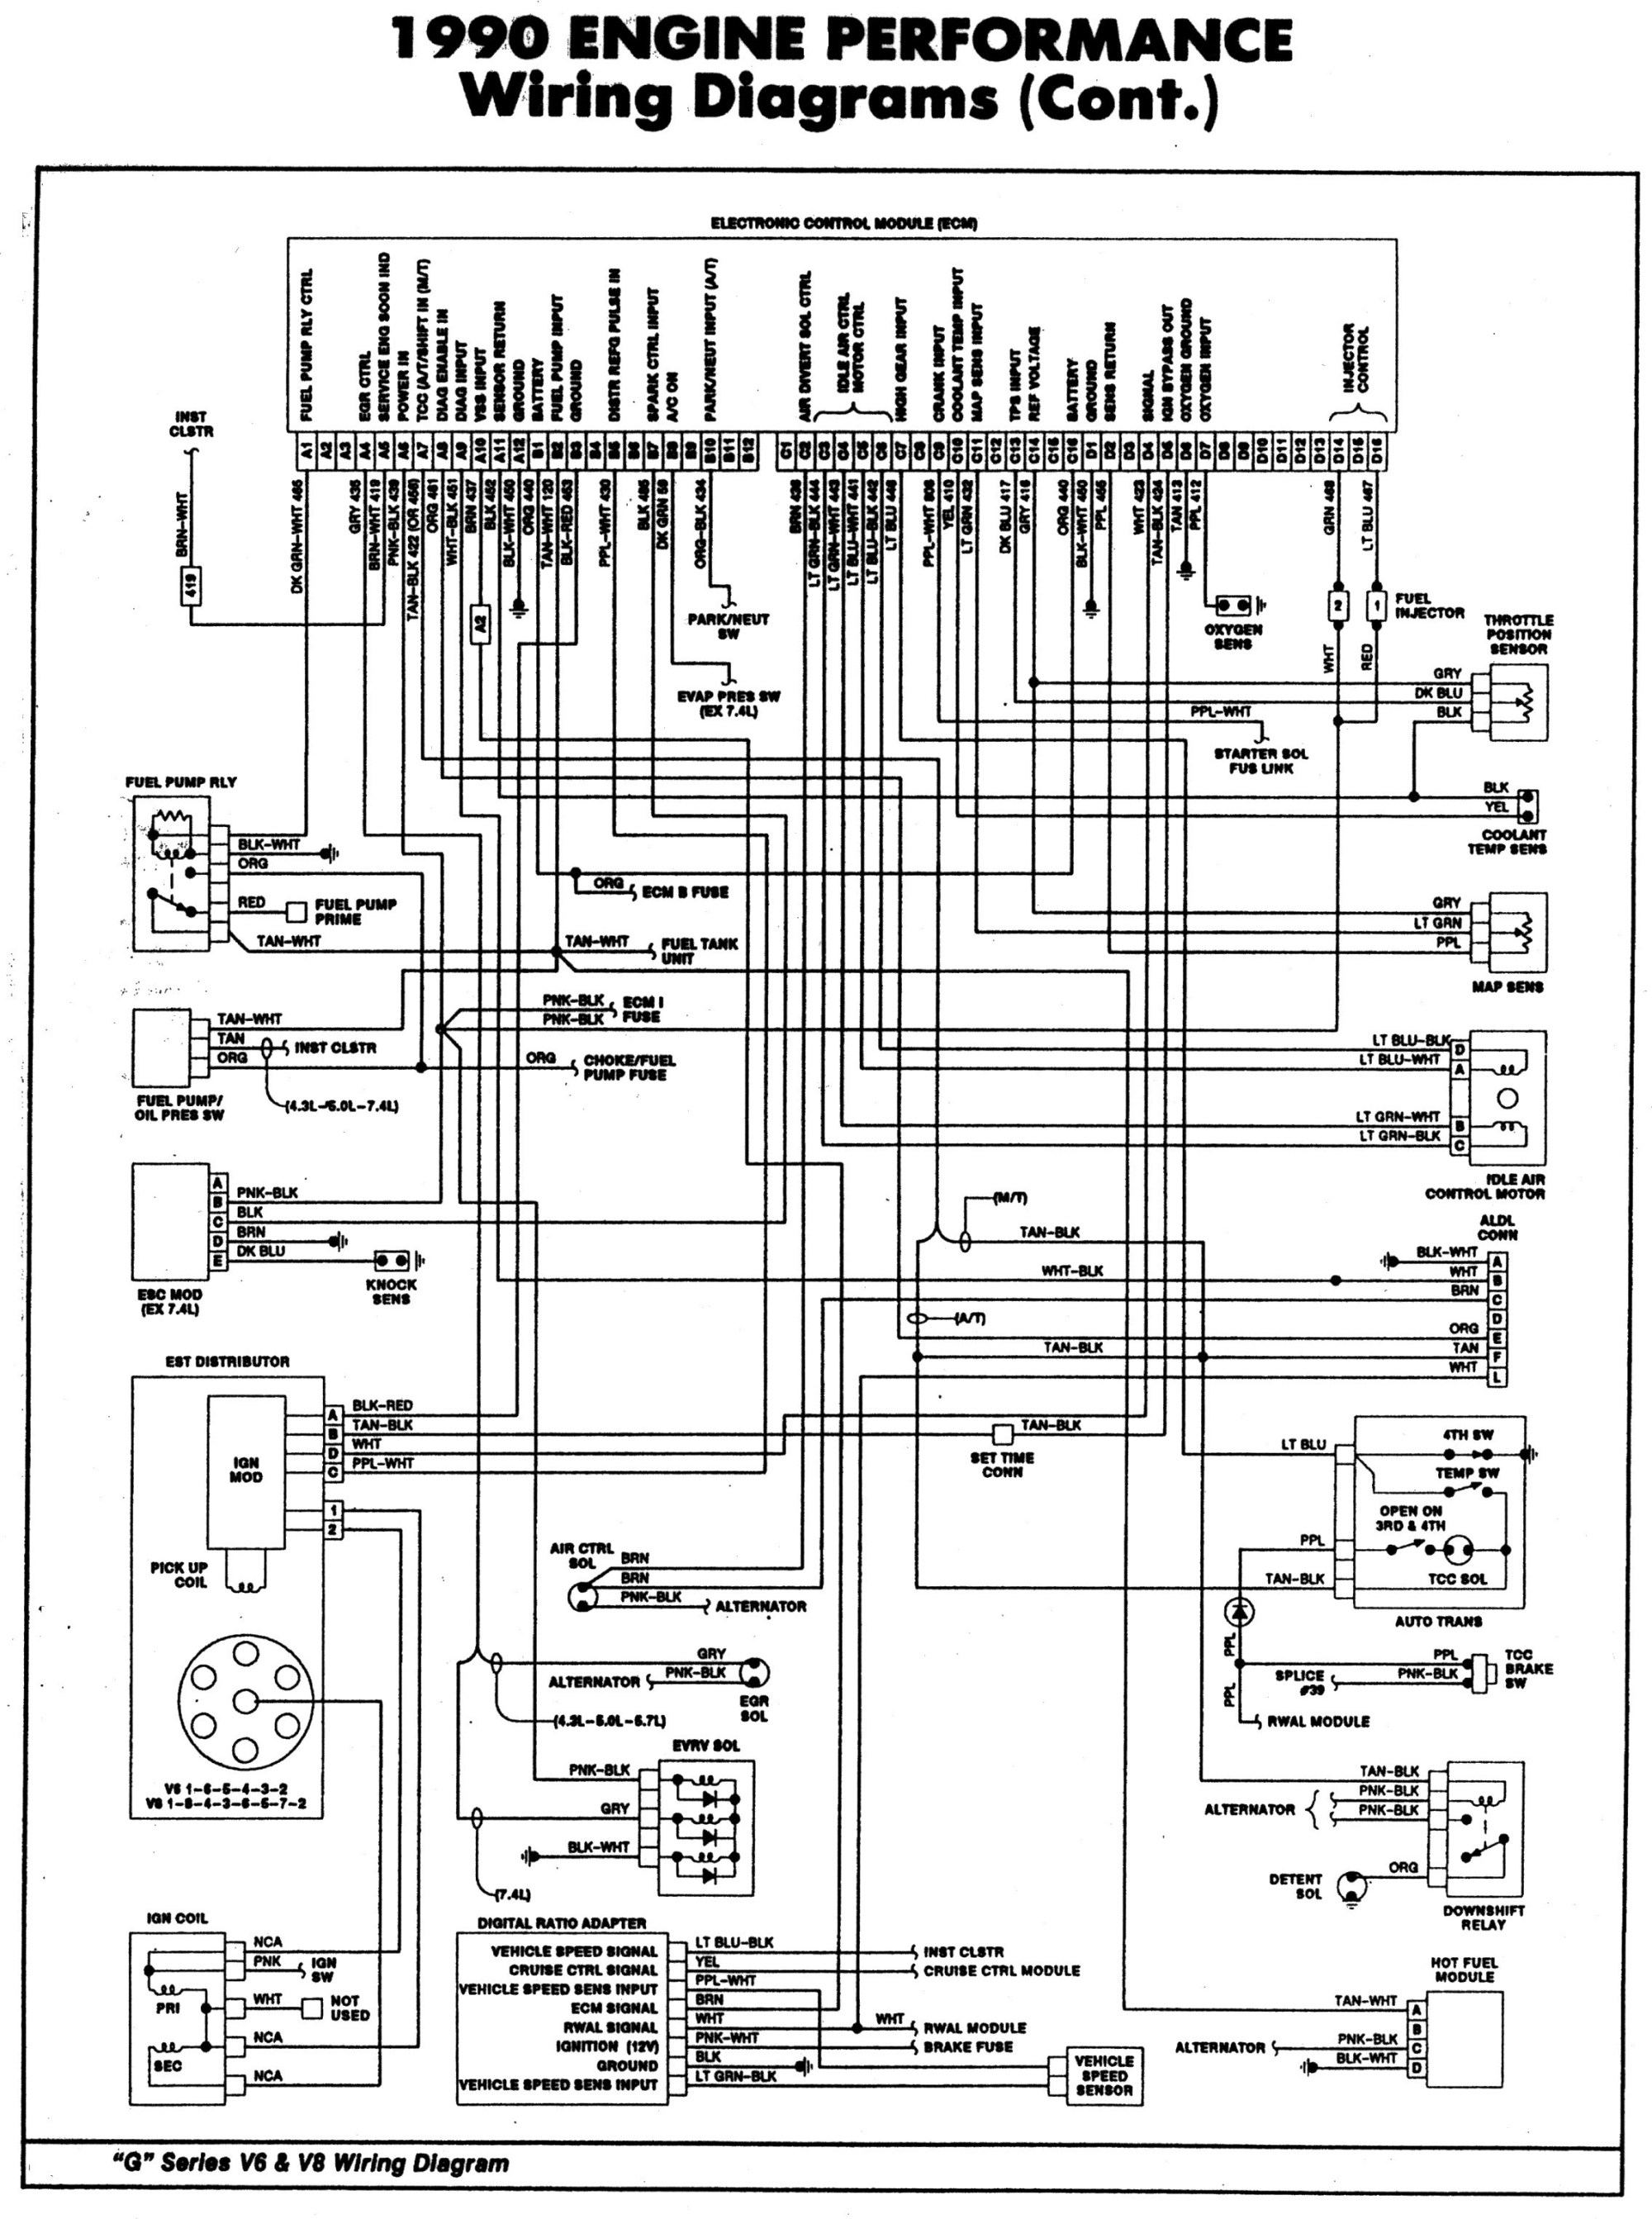 hight resolution of 95 s10 2 2 engine diagram wiring diagram rows95 s10 2 2 engine diagram wiring diagram